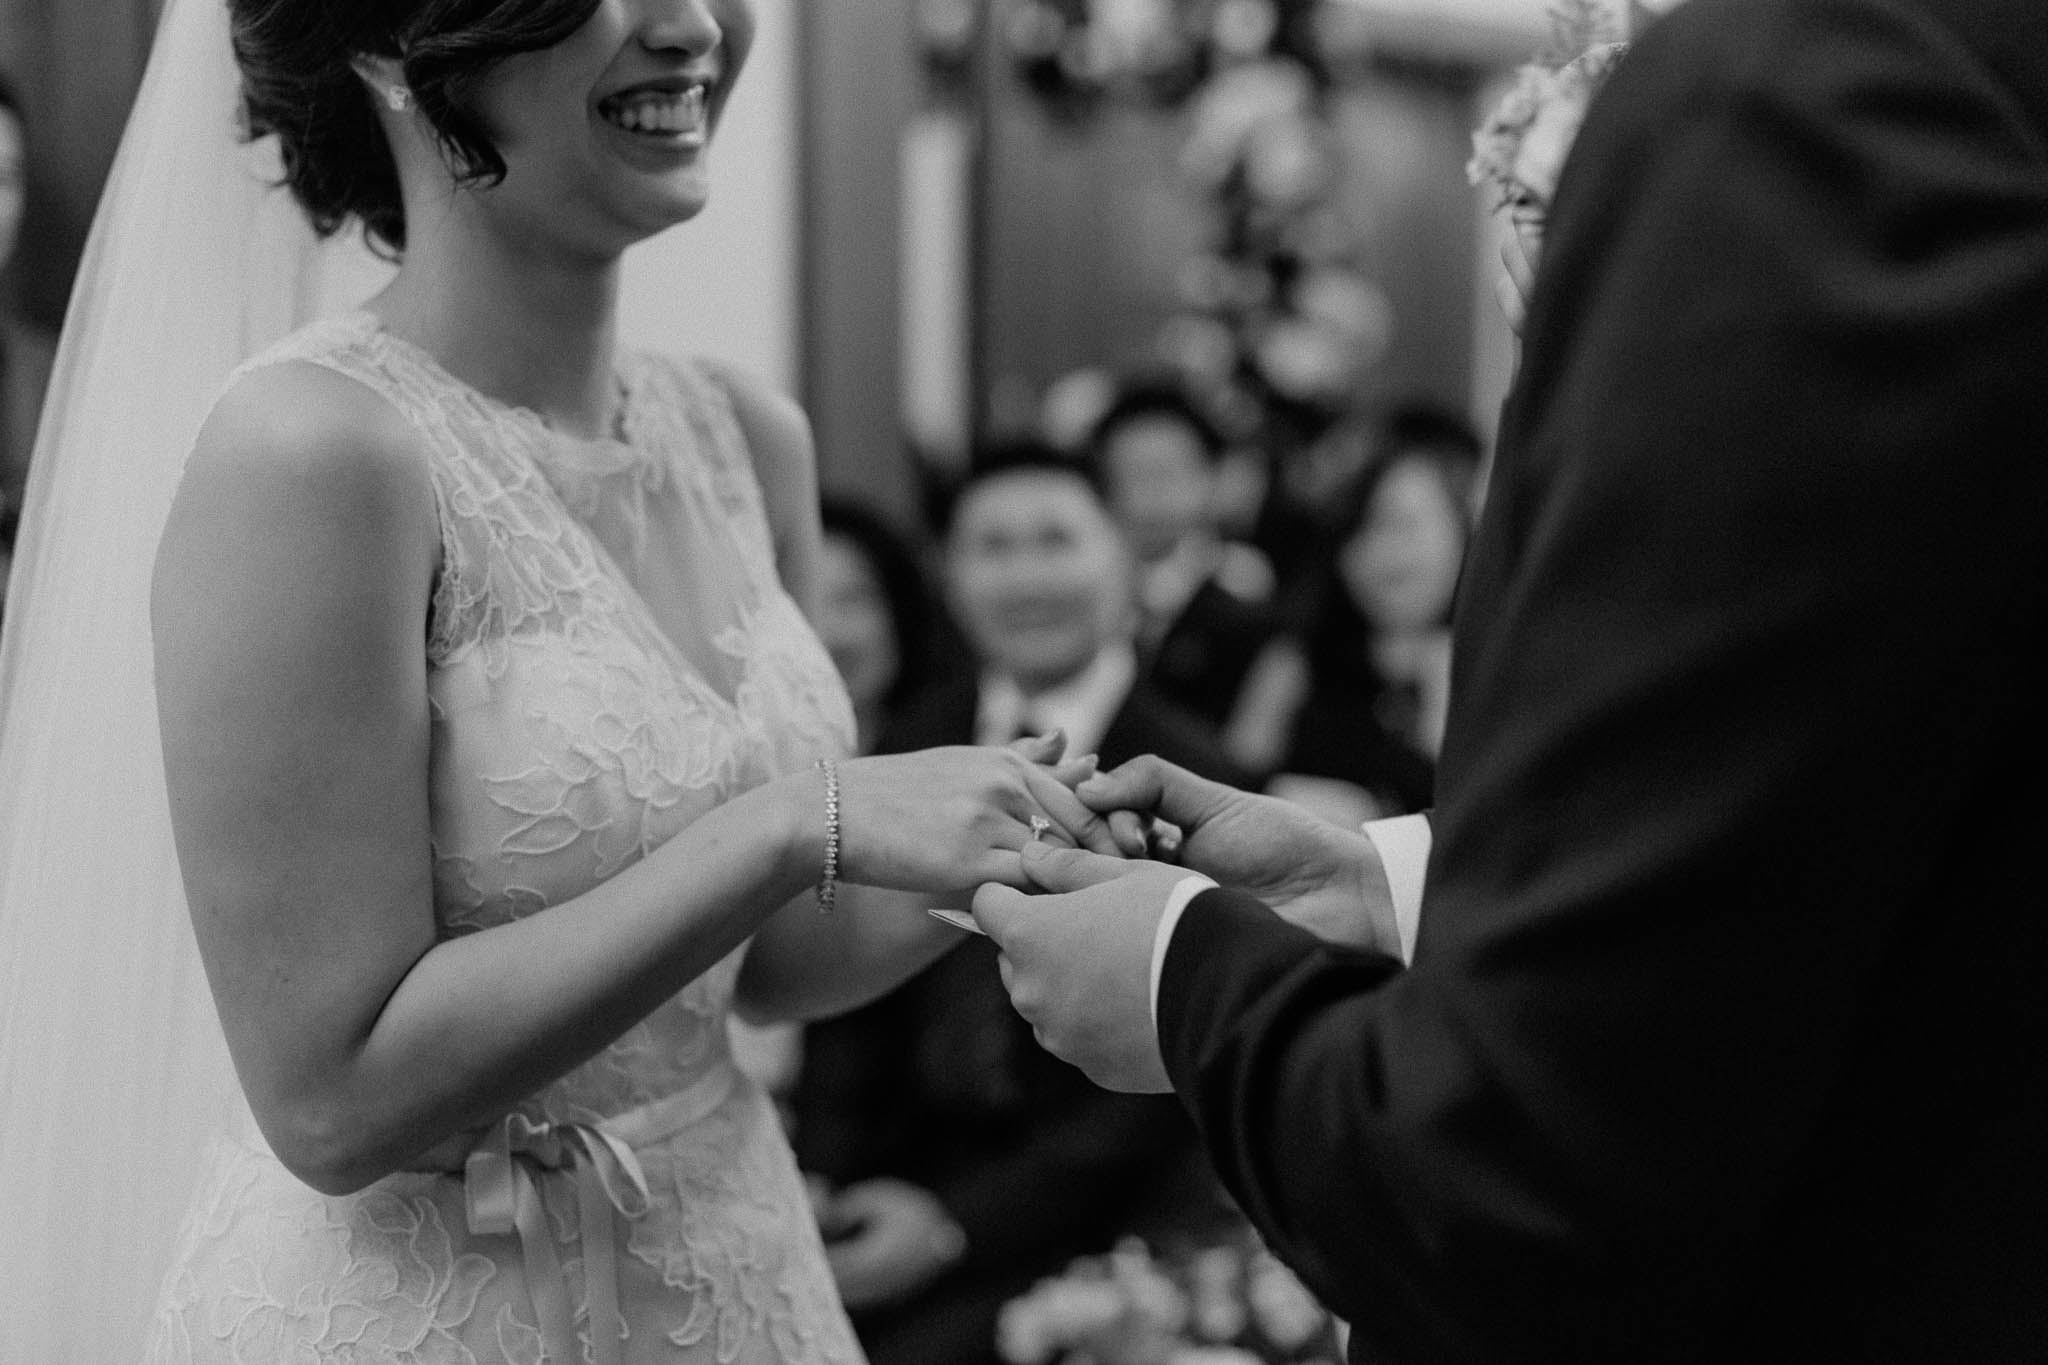 singapore-wedding-photographer-pre-wedding-ashley-sean-037.jpg